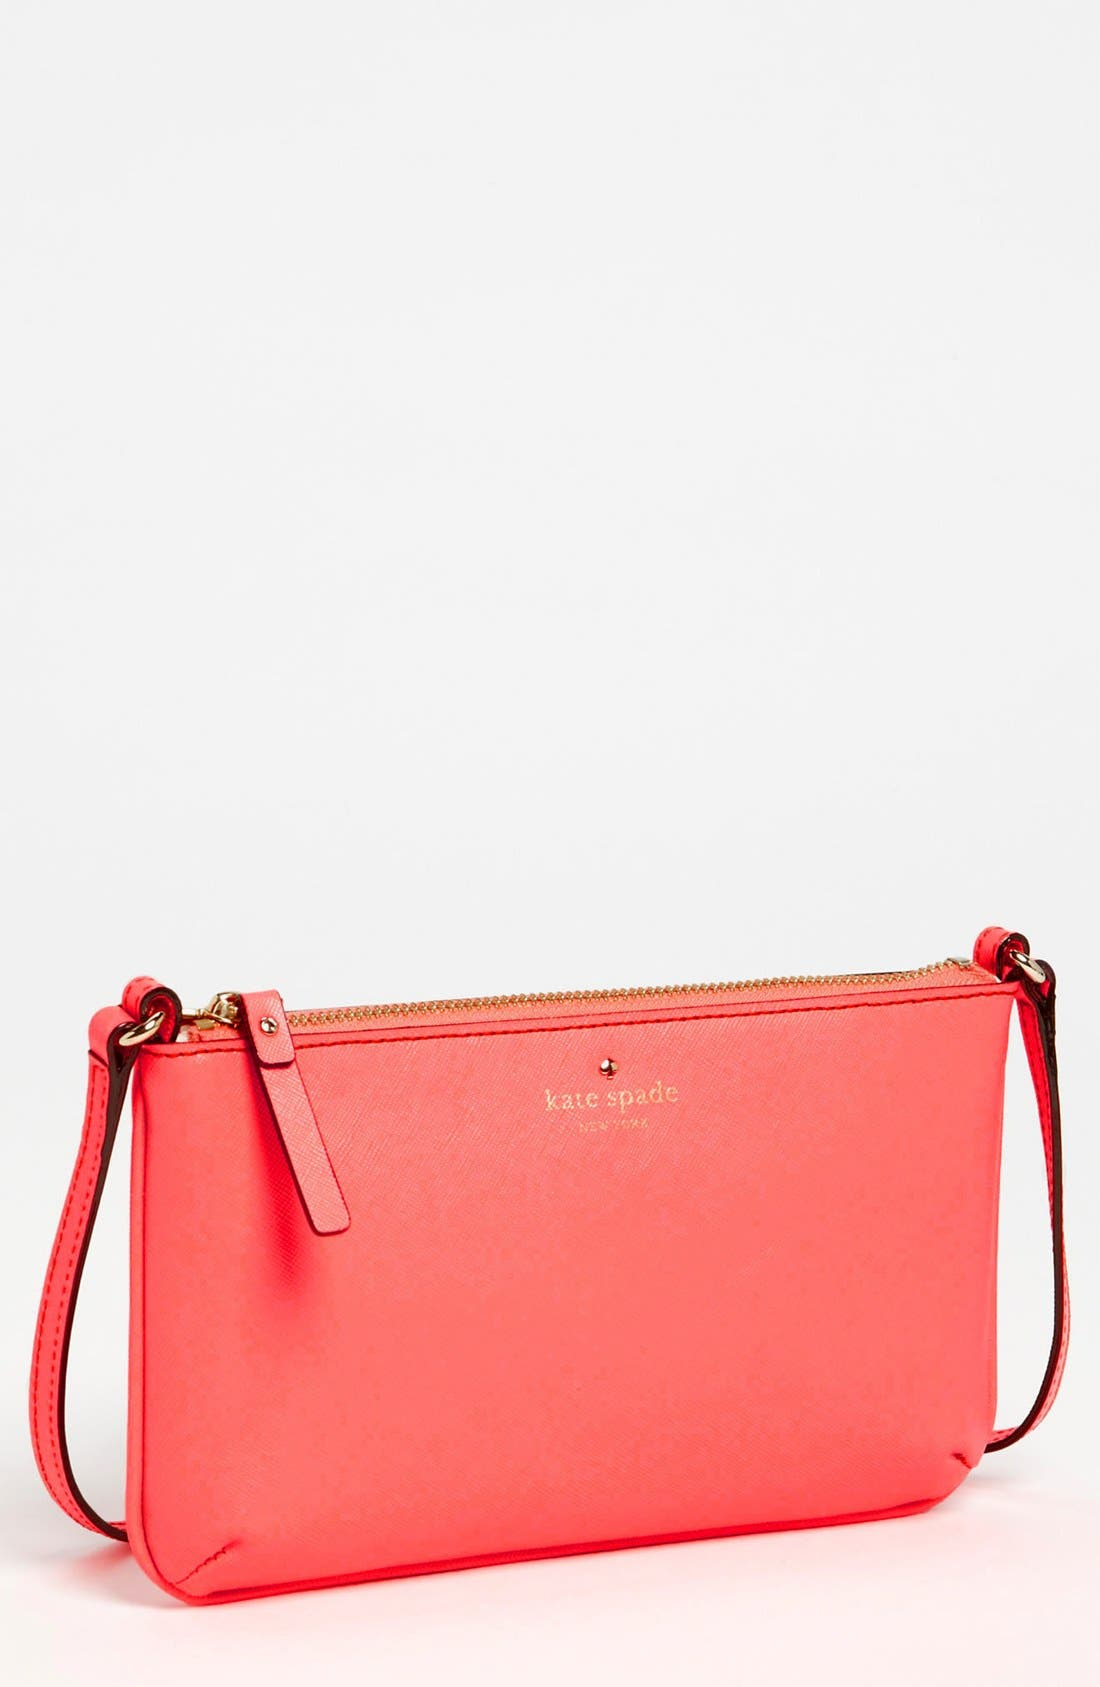 Alternate Image 1 Selected - kate spade new york 'mikas pond - janelle' crossbody bag